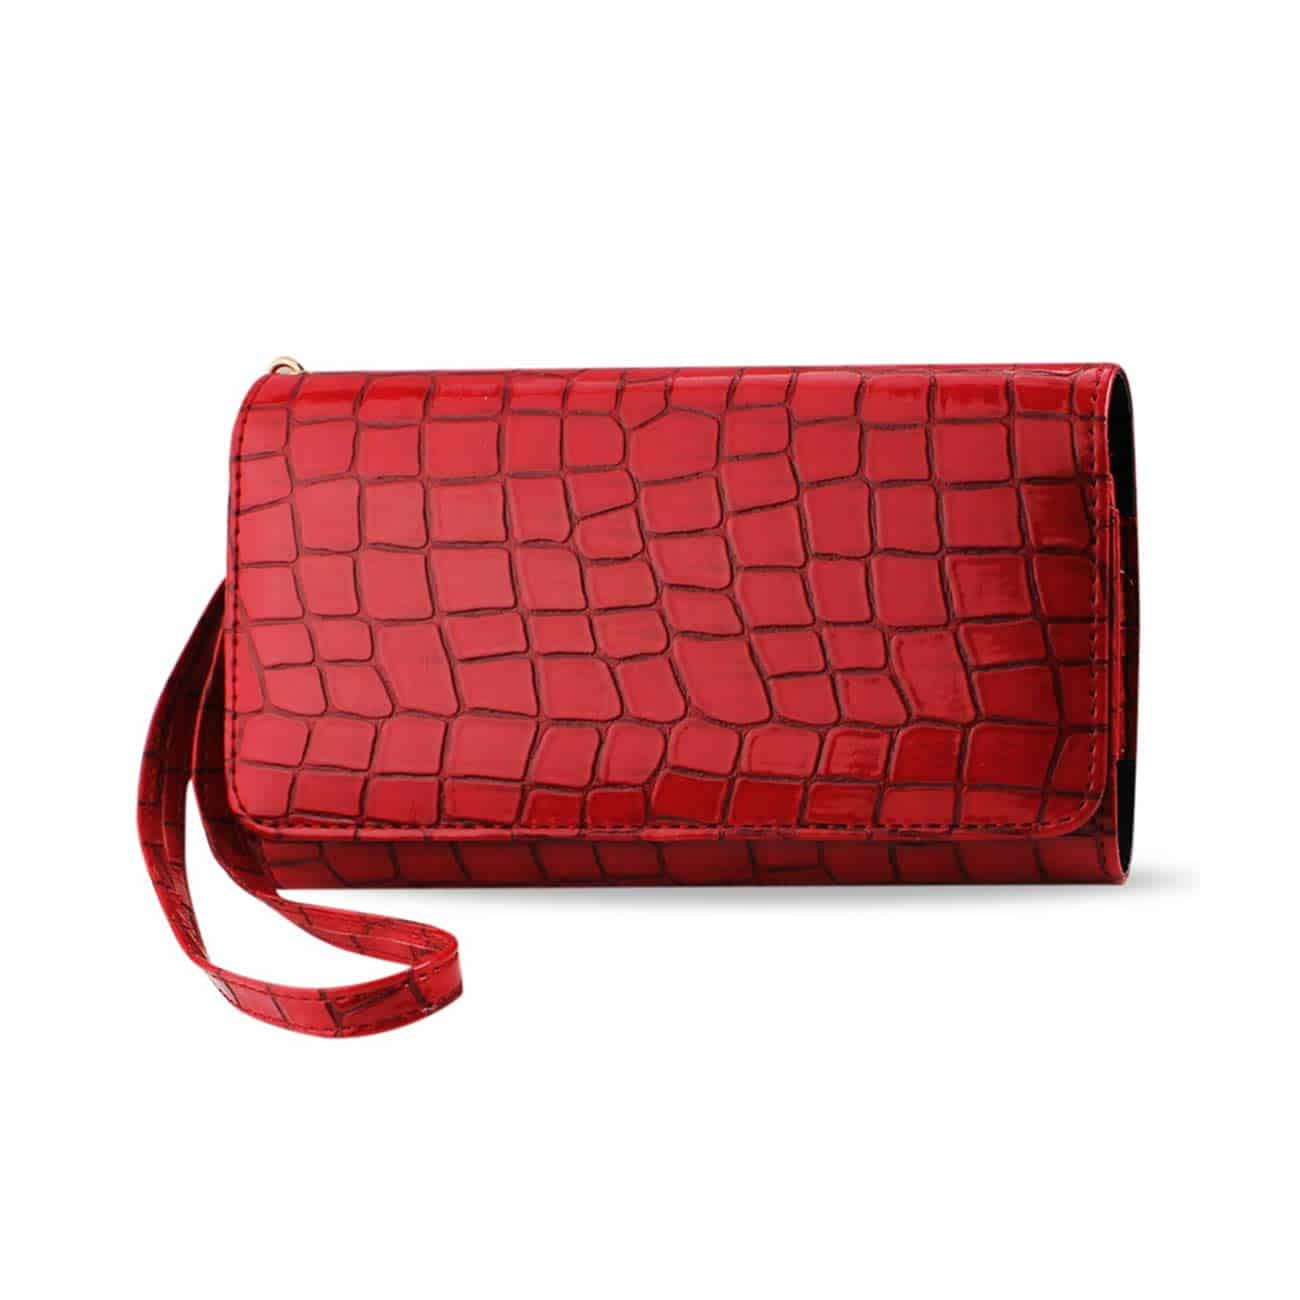 CROCODILE PATTERN PURSE WALLET CASE IN RED